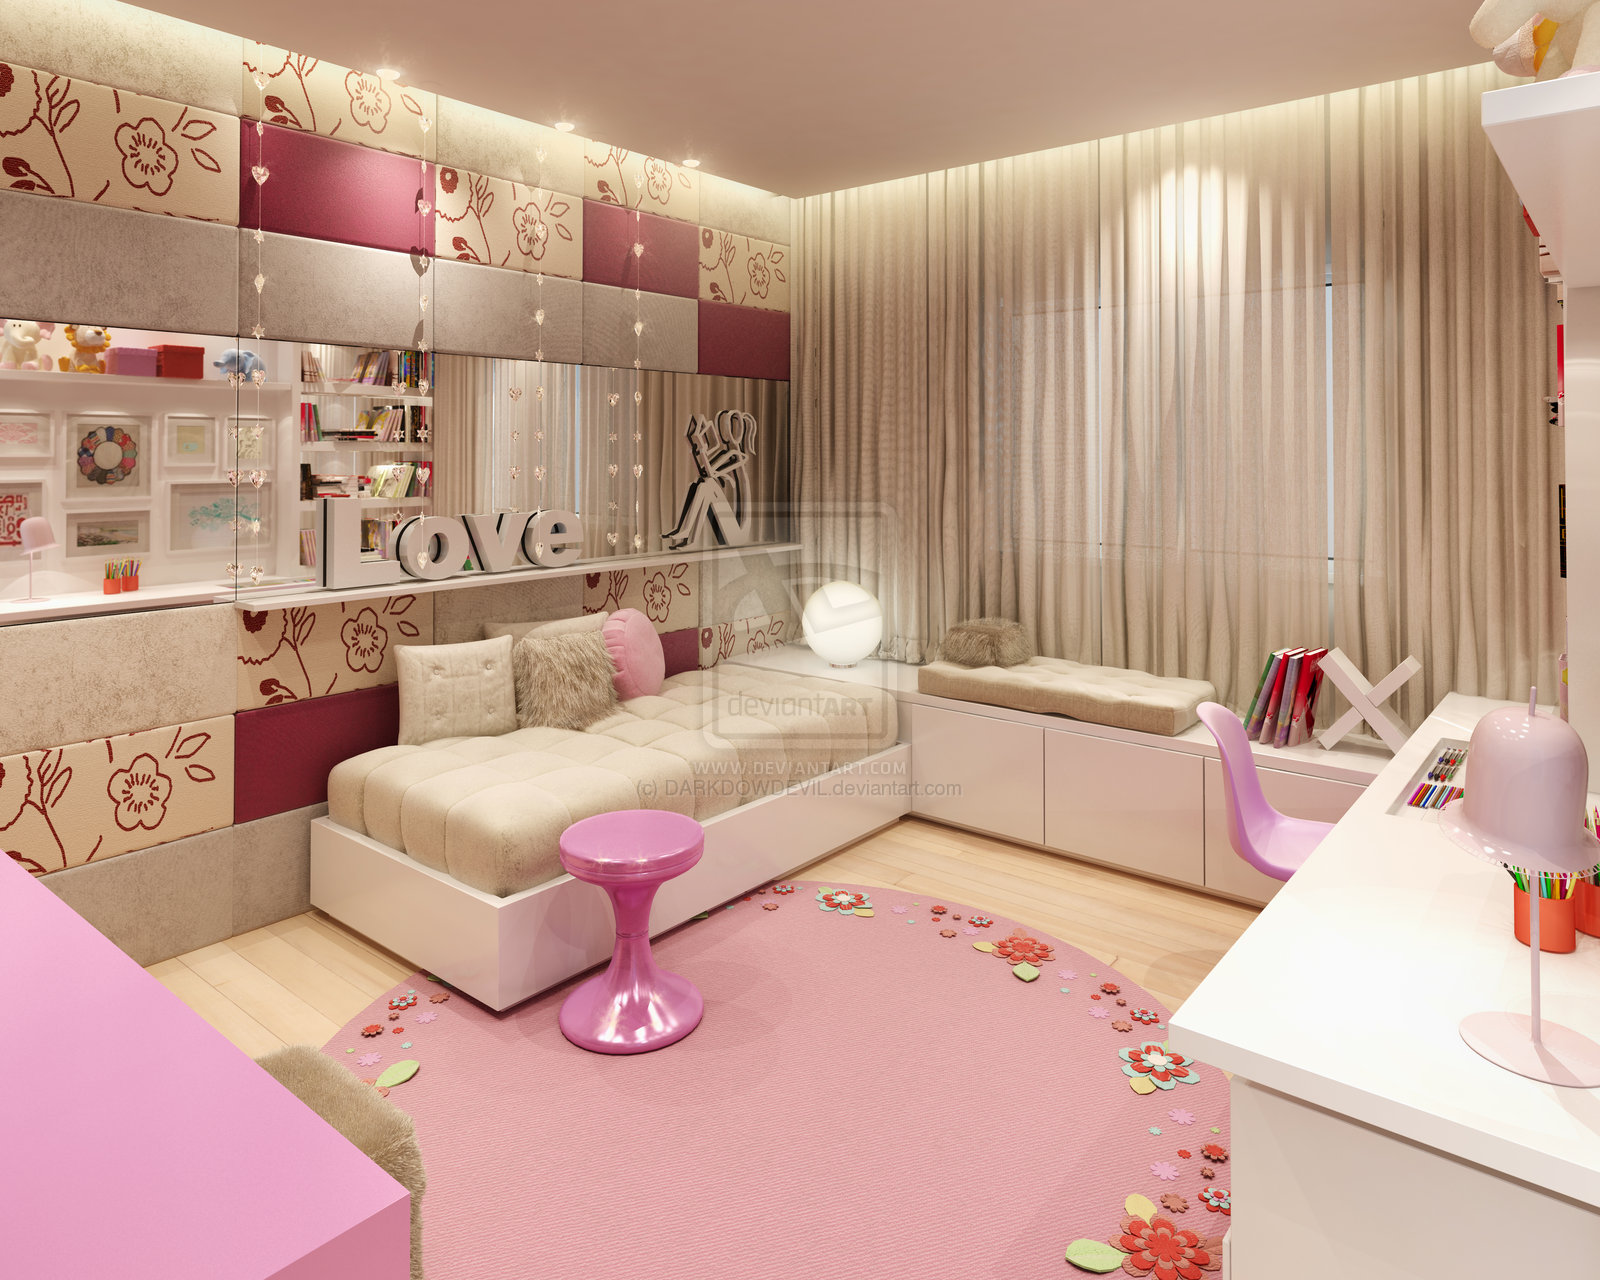 alfa img showing coolest bedrooms in the world for girls